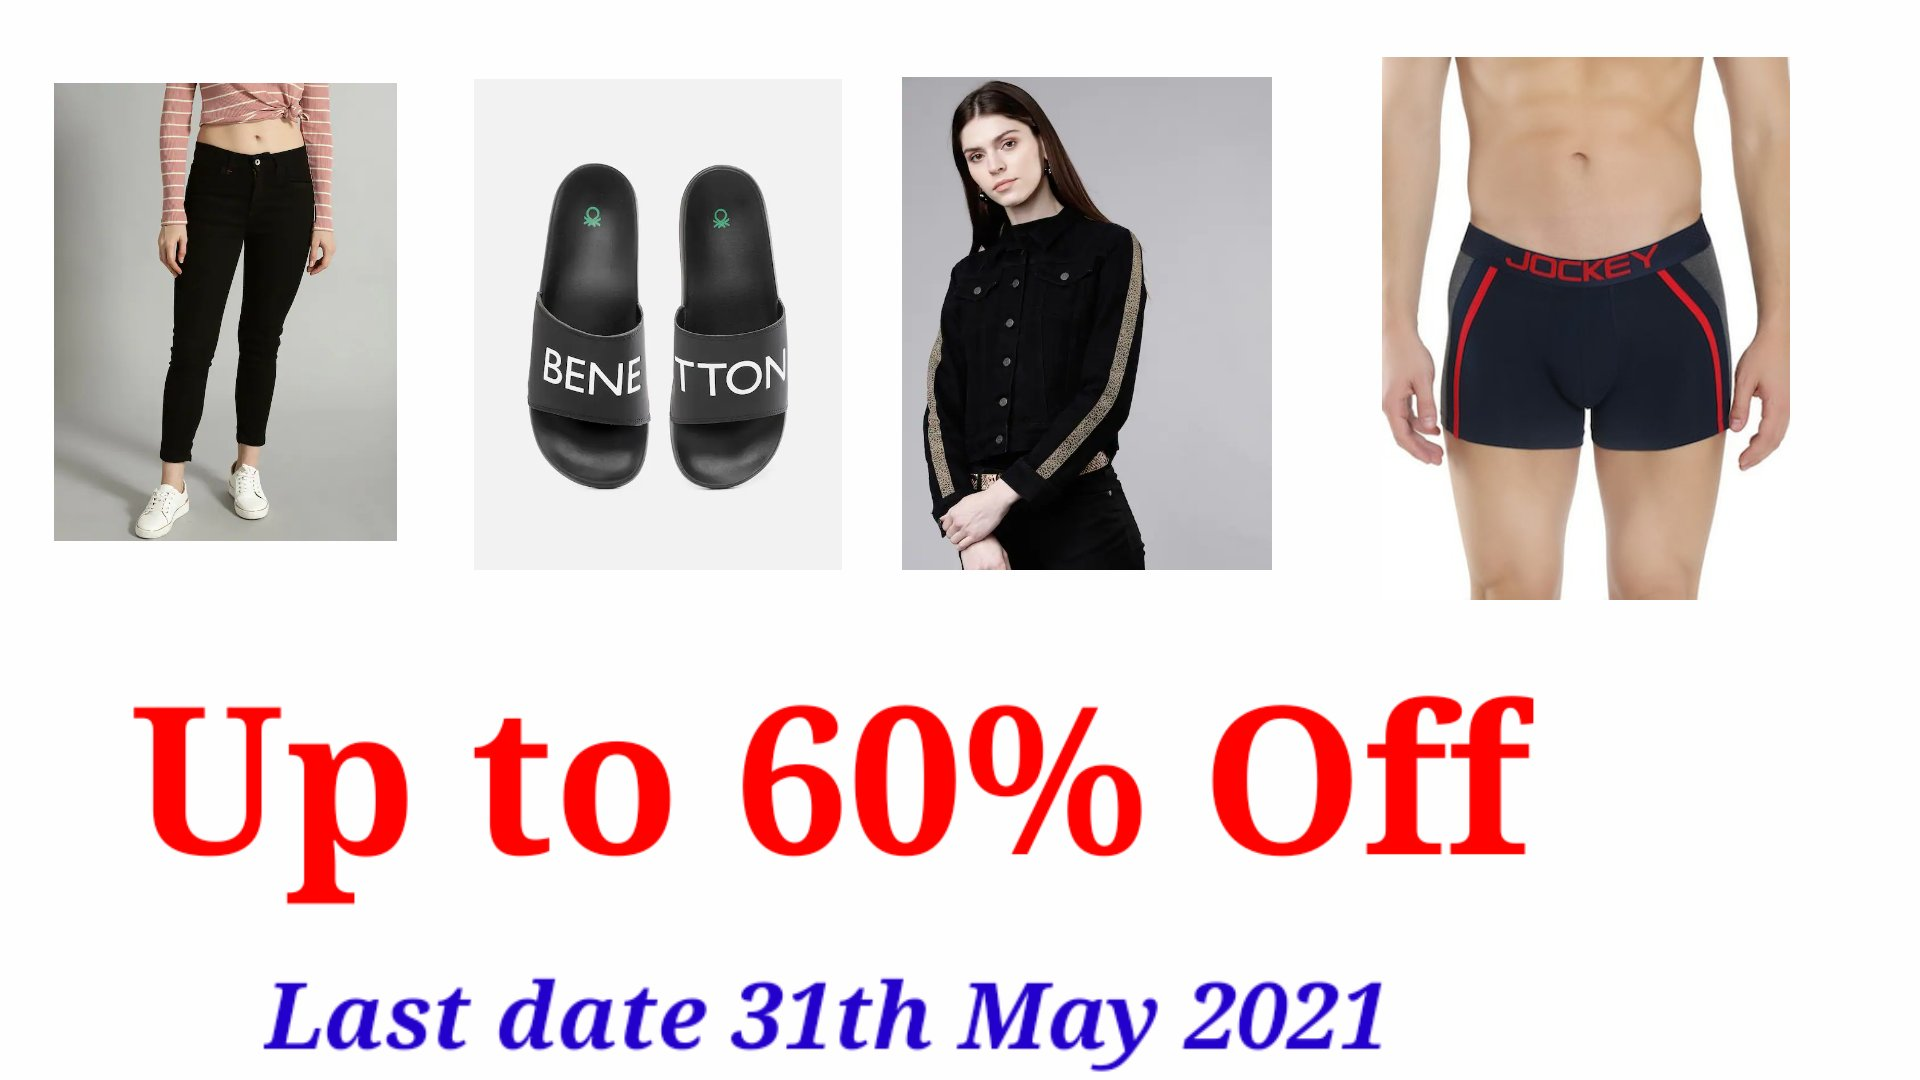 Online shopping offer updates on 31th May 2021